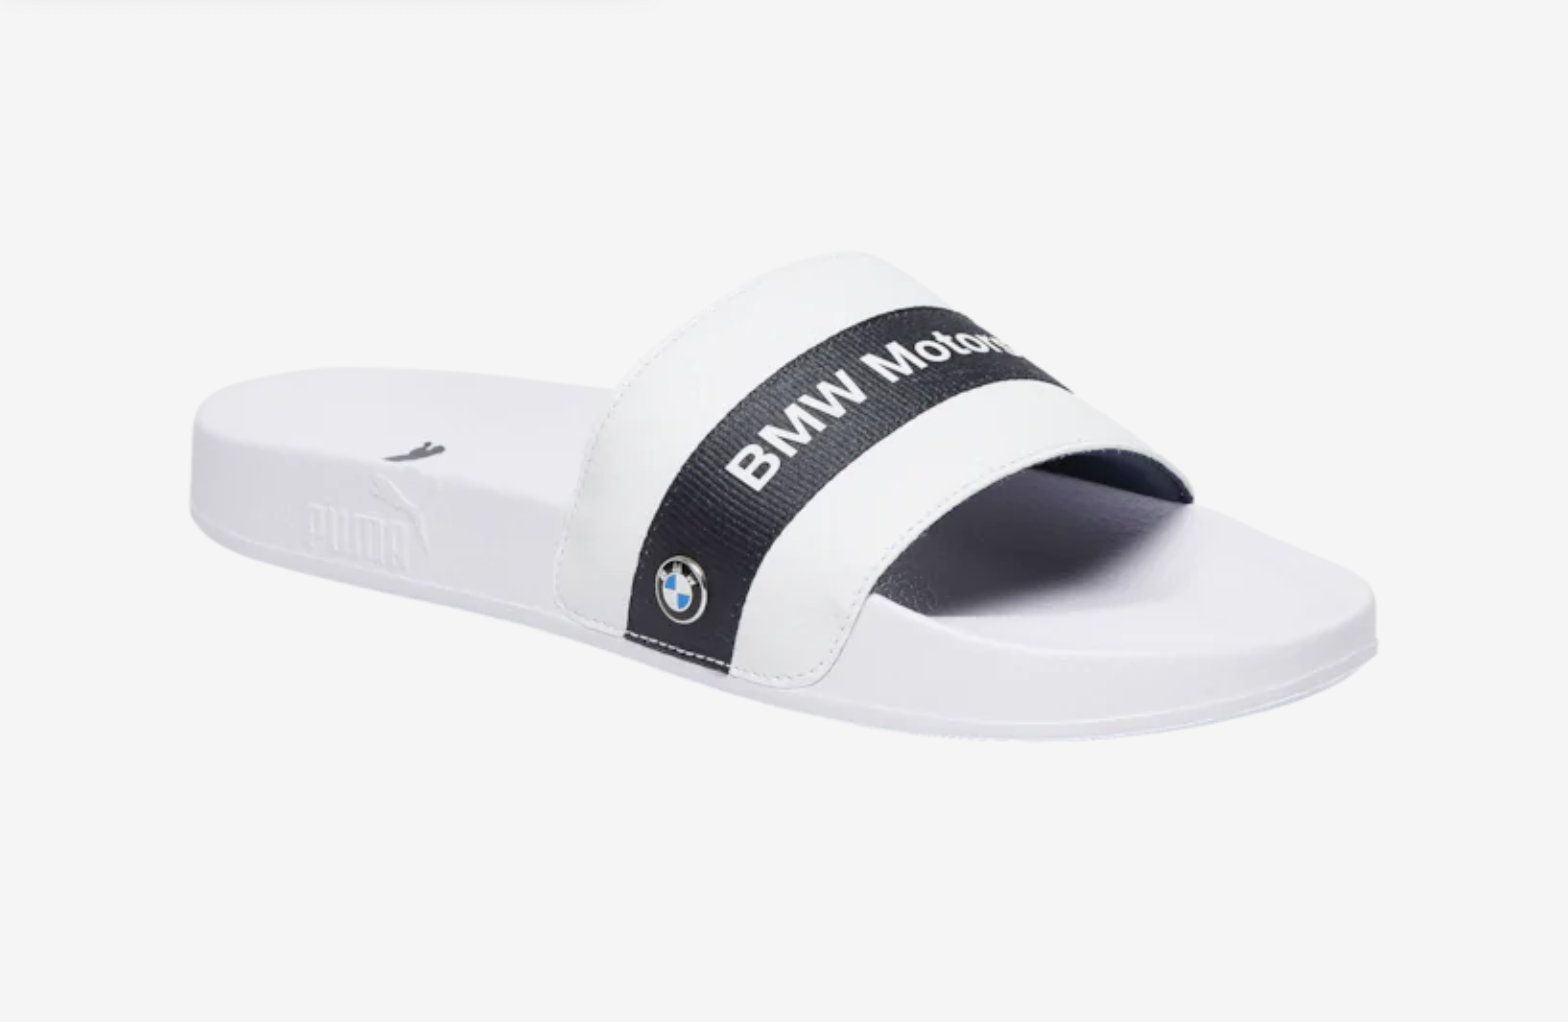 PUMA BMW Slides at Footlocker